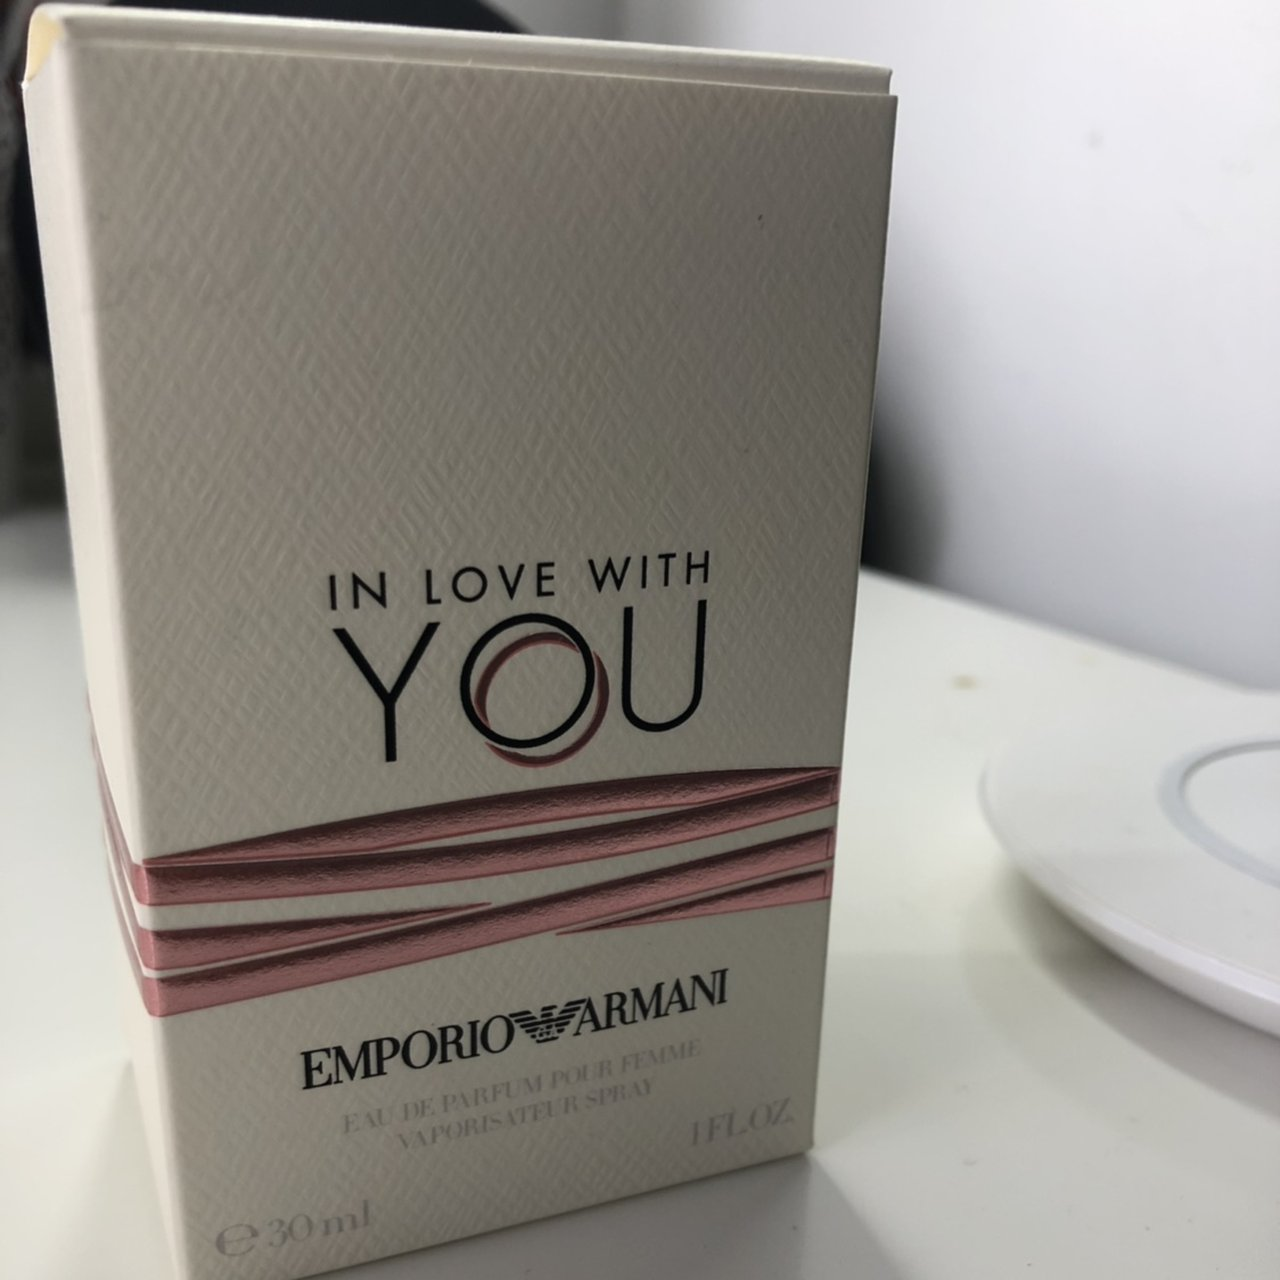 Emporio Armani In Love With You Womens Perfume Never Depop